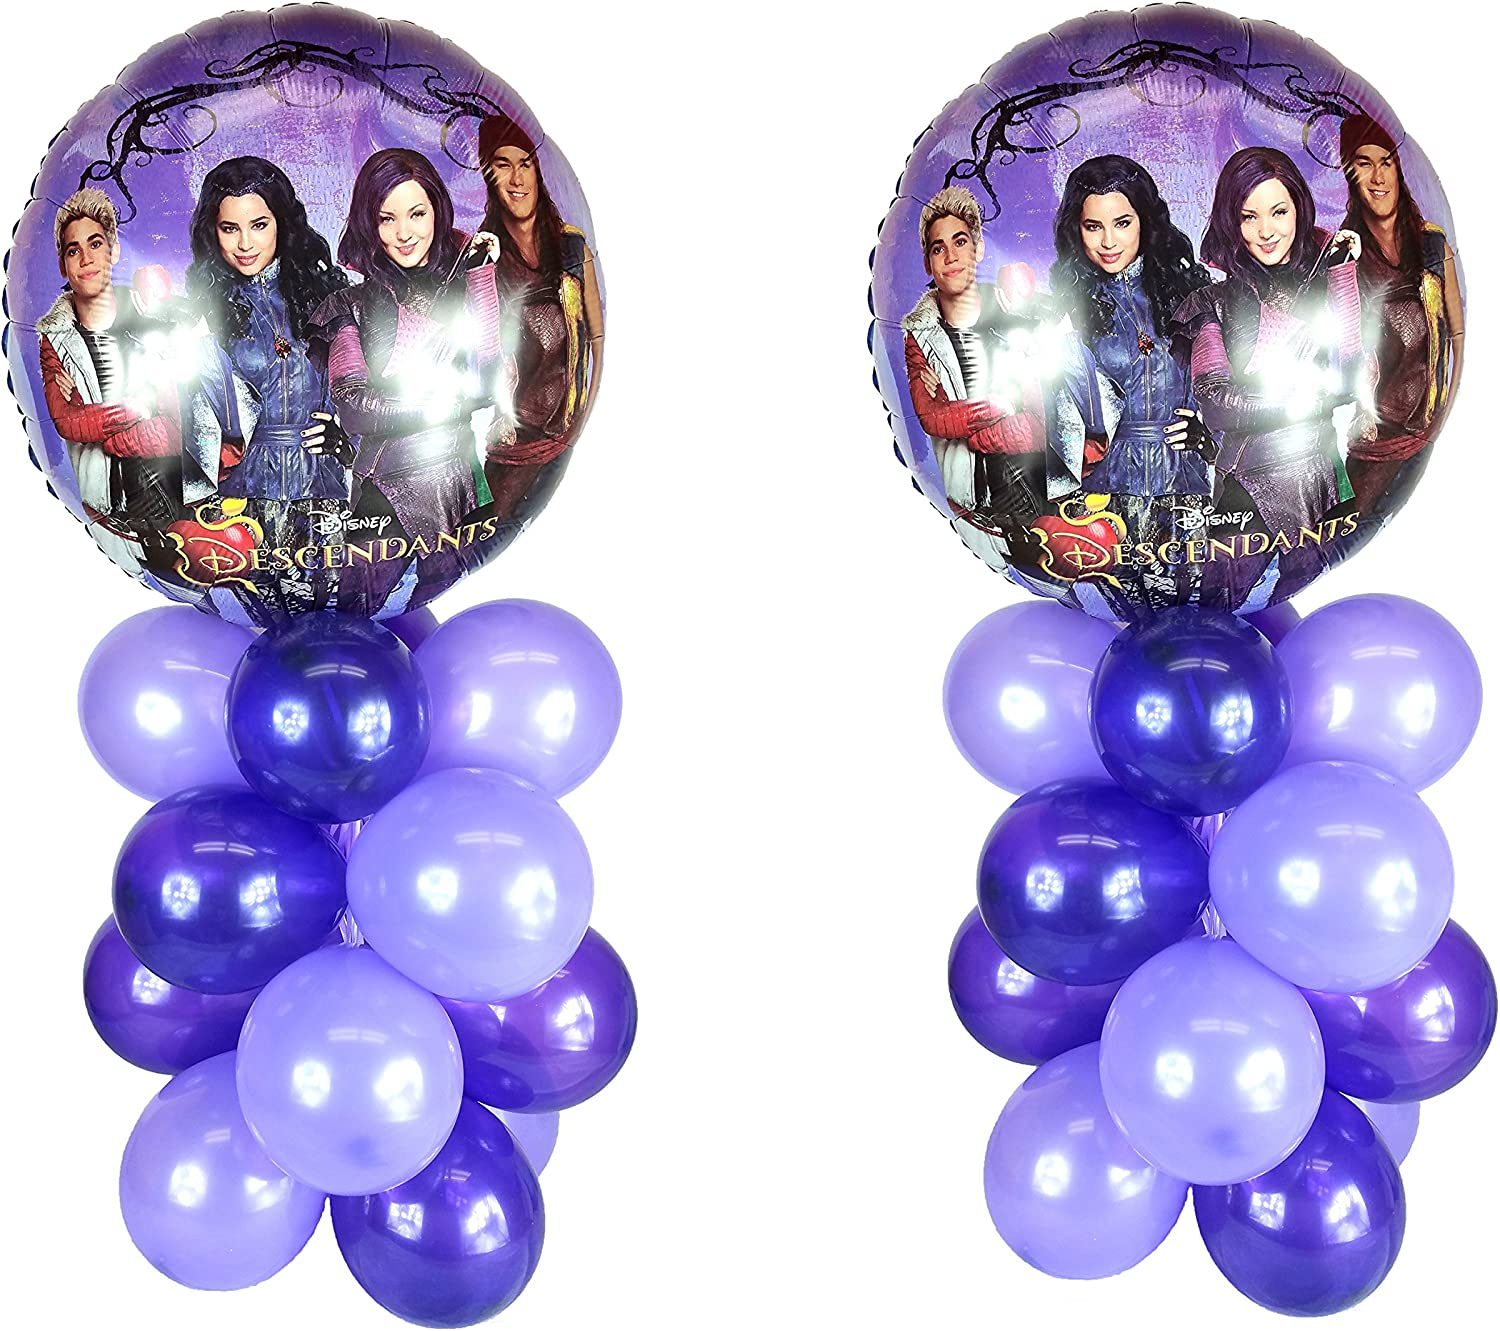 The Descendants Balloon Table Display Birthday Party  AIR FILL, NO HELIUM NEEDED   by Party Supplies